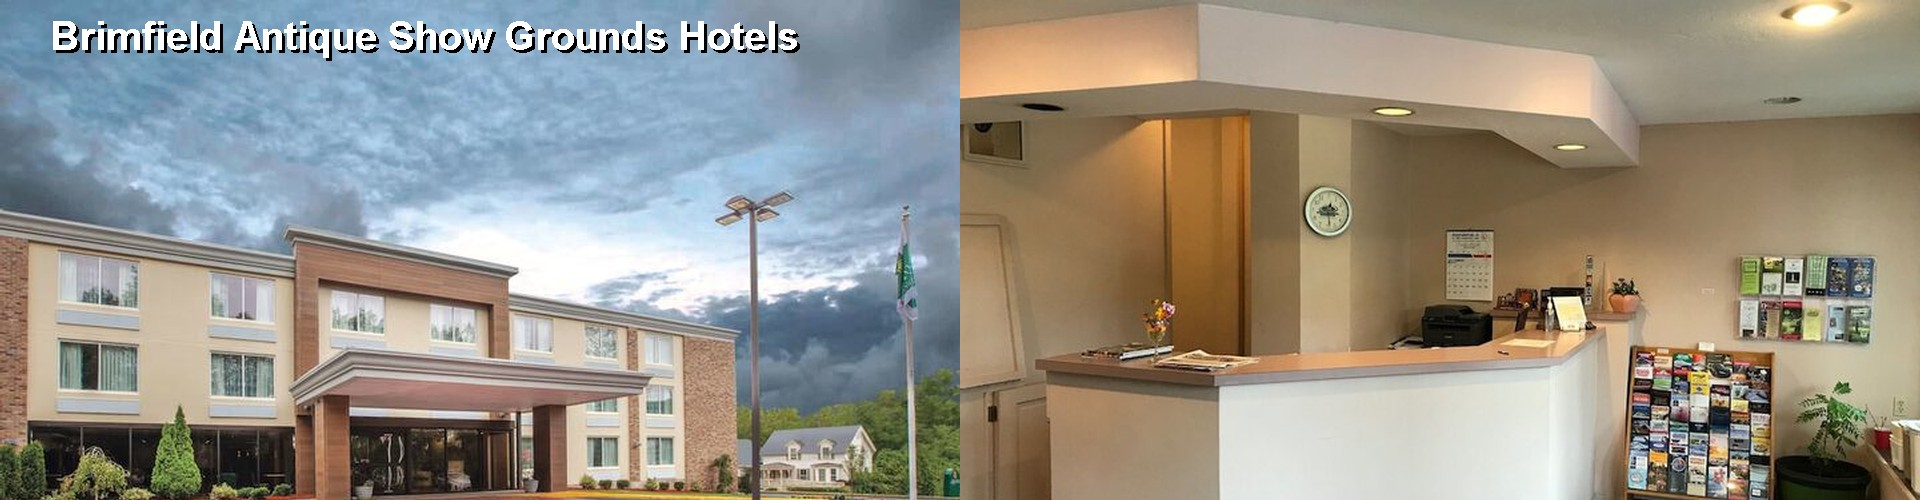 5 Best Hotels near Brimfield Antique Show Grounds